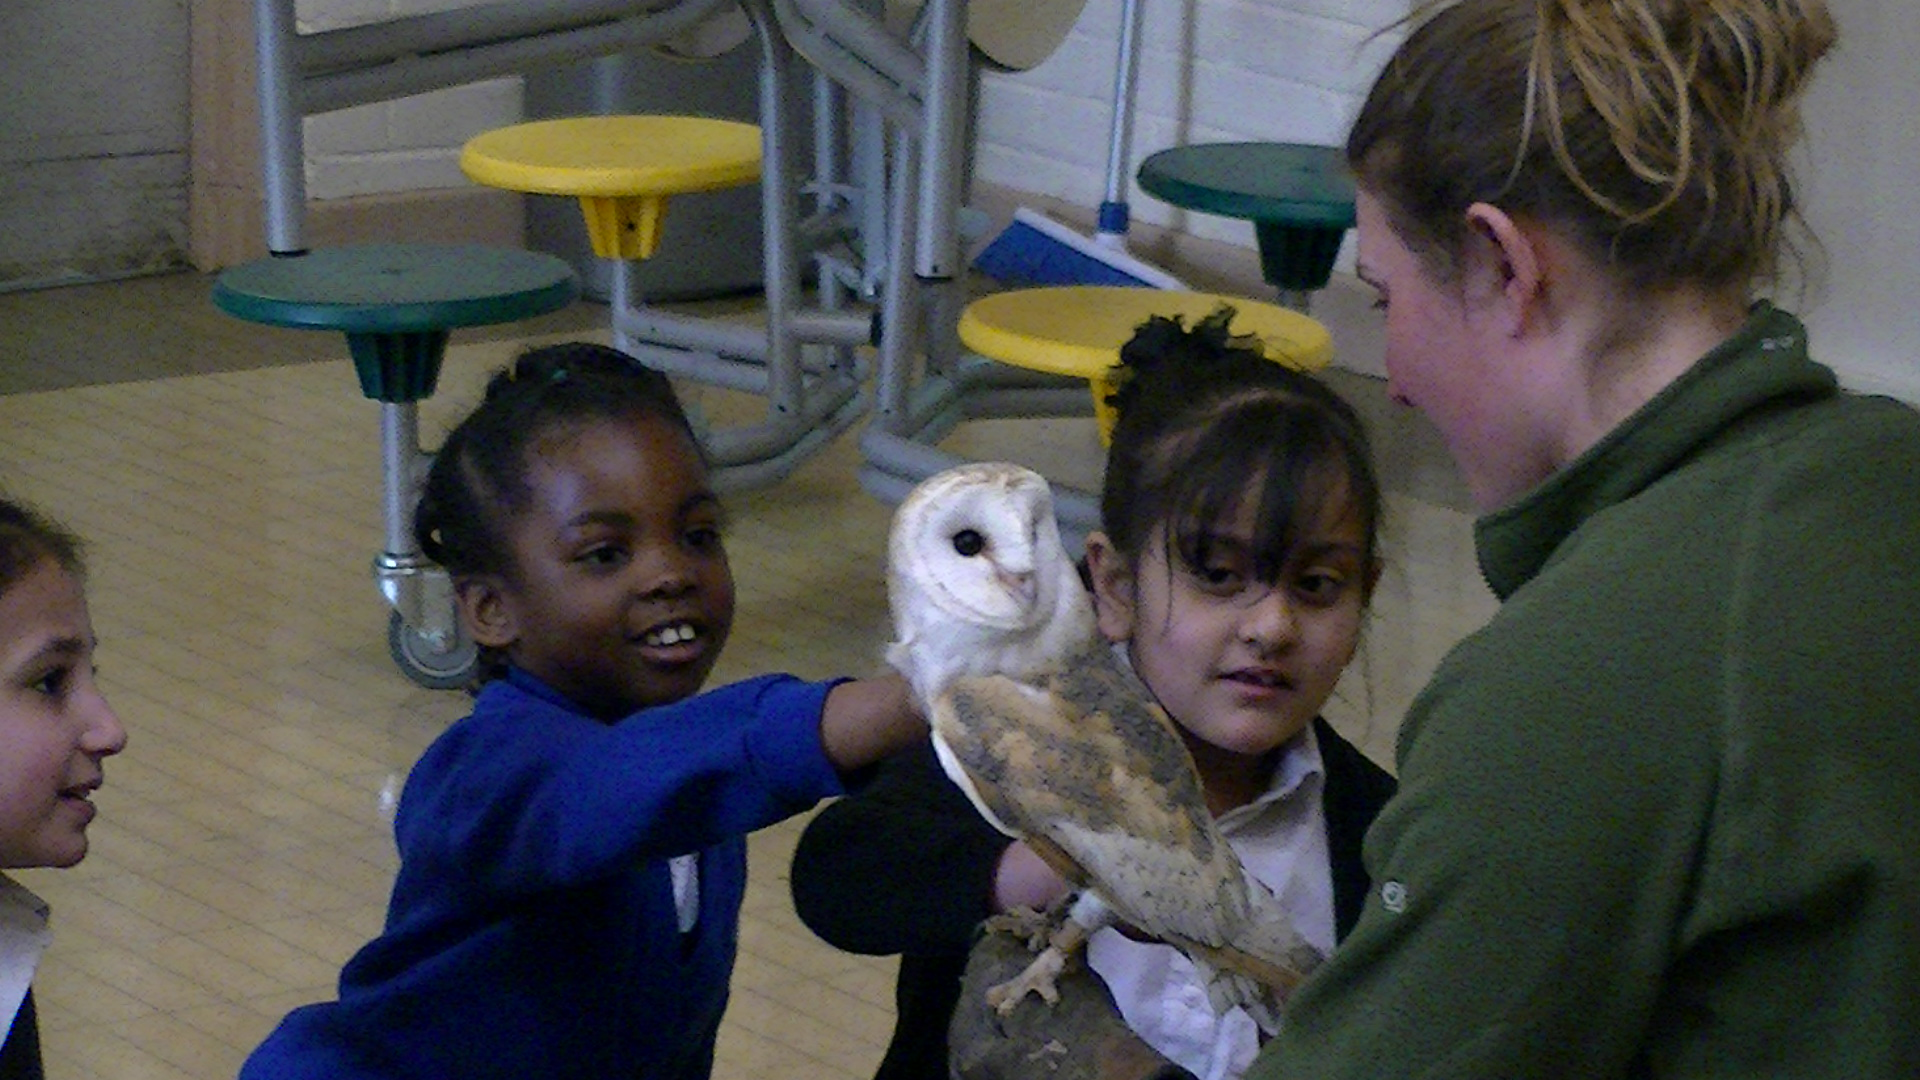 When the owls came to school